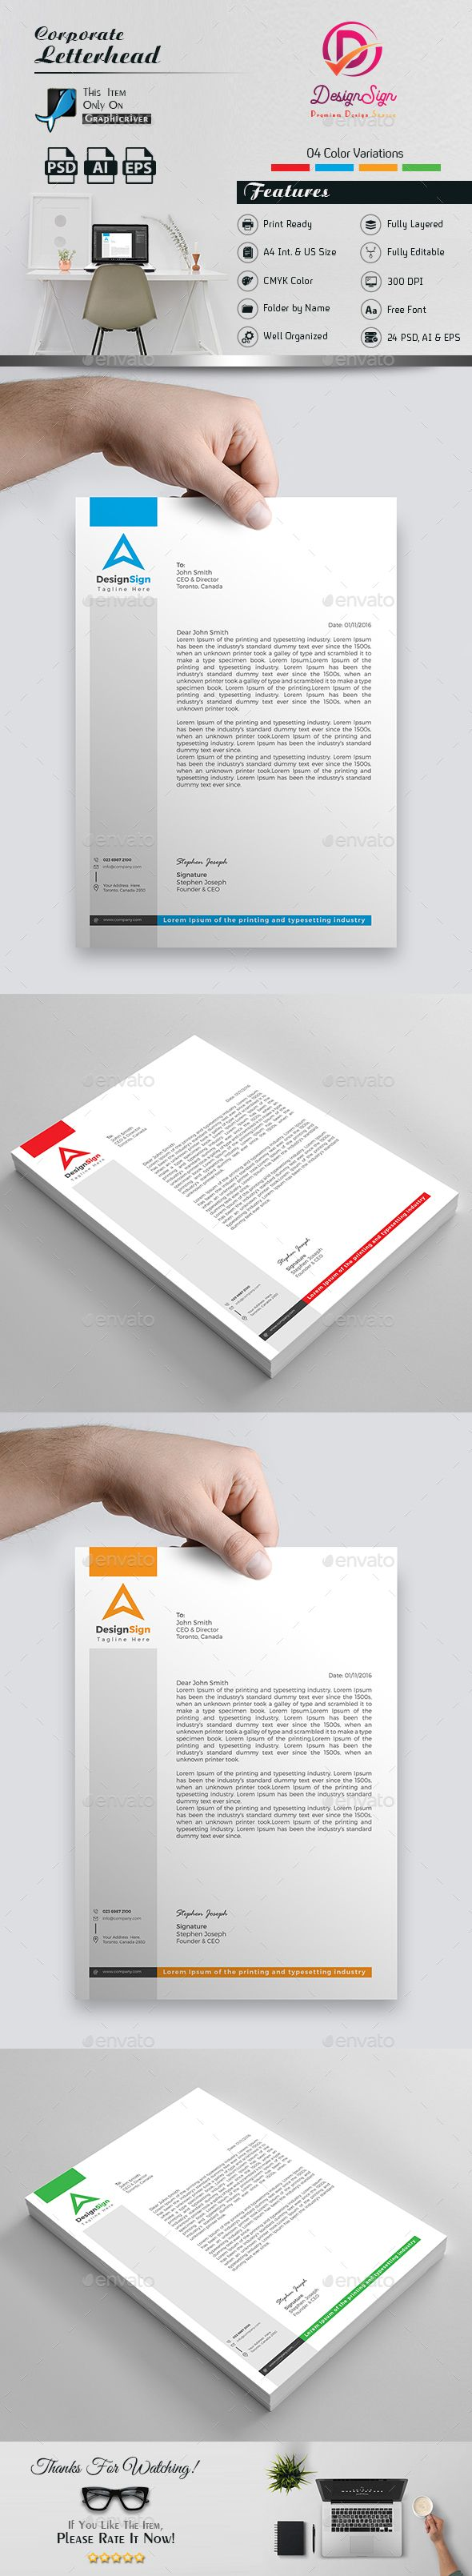 letterhead stationery print templates download here httpsgraphicrivernet - Letterhead Design Ideas